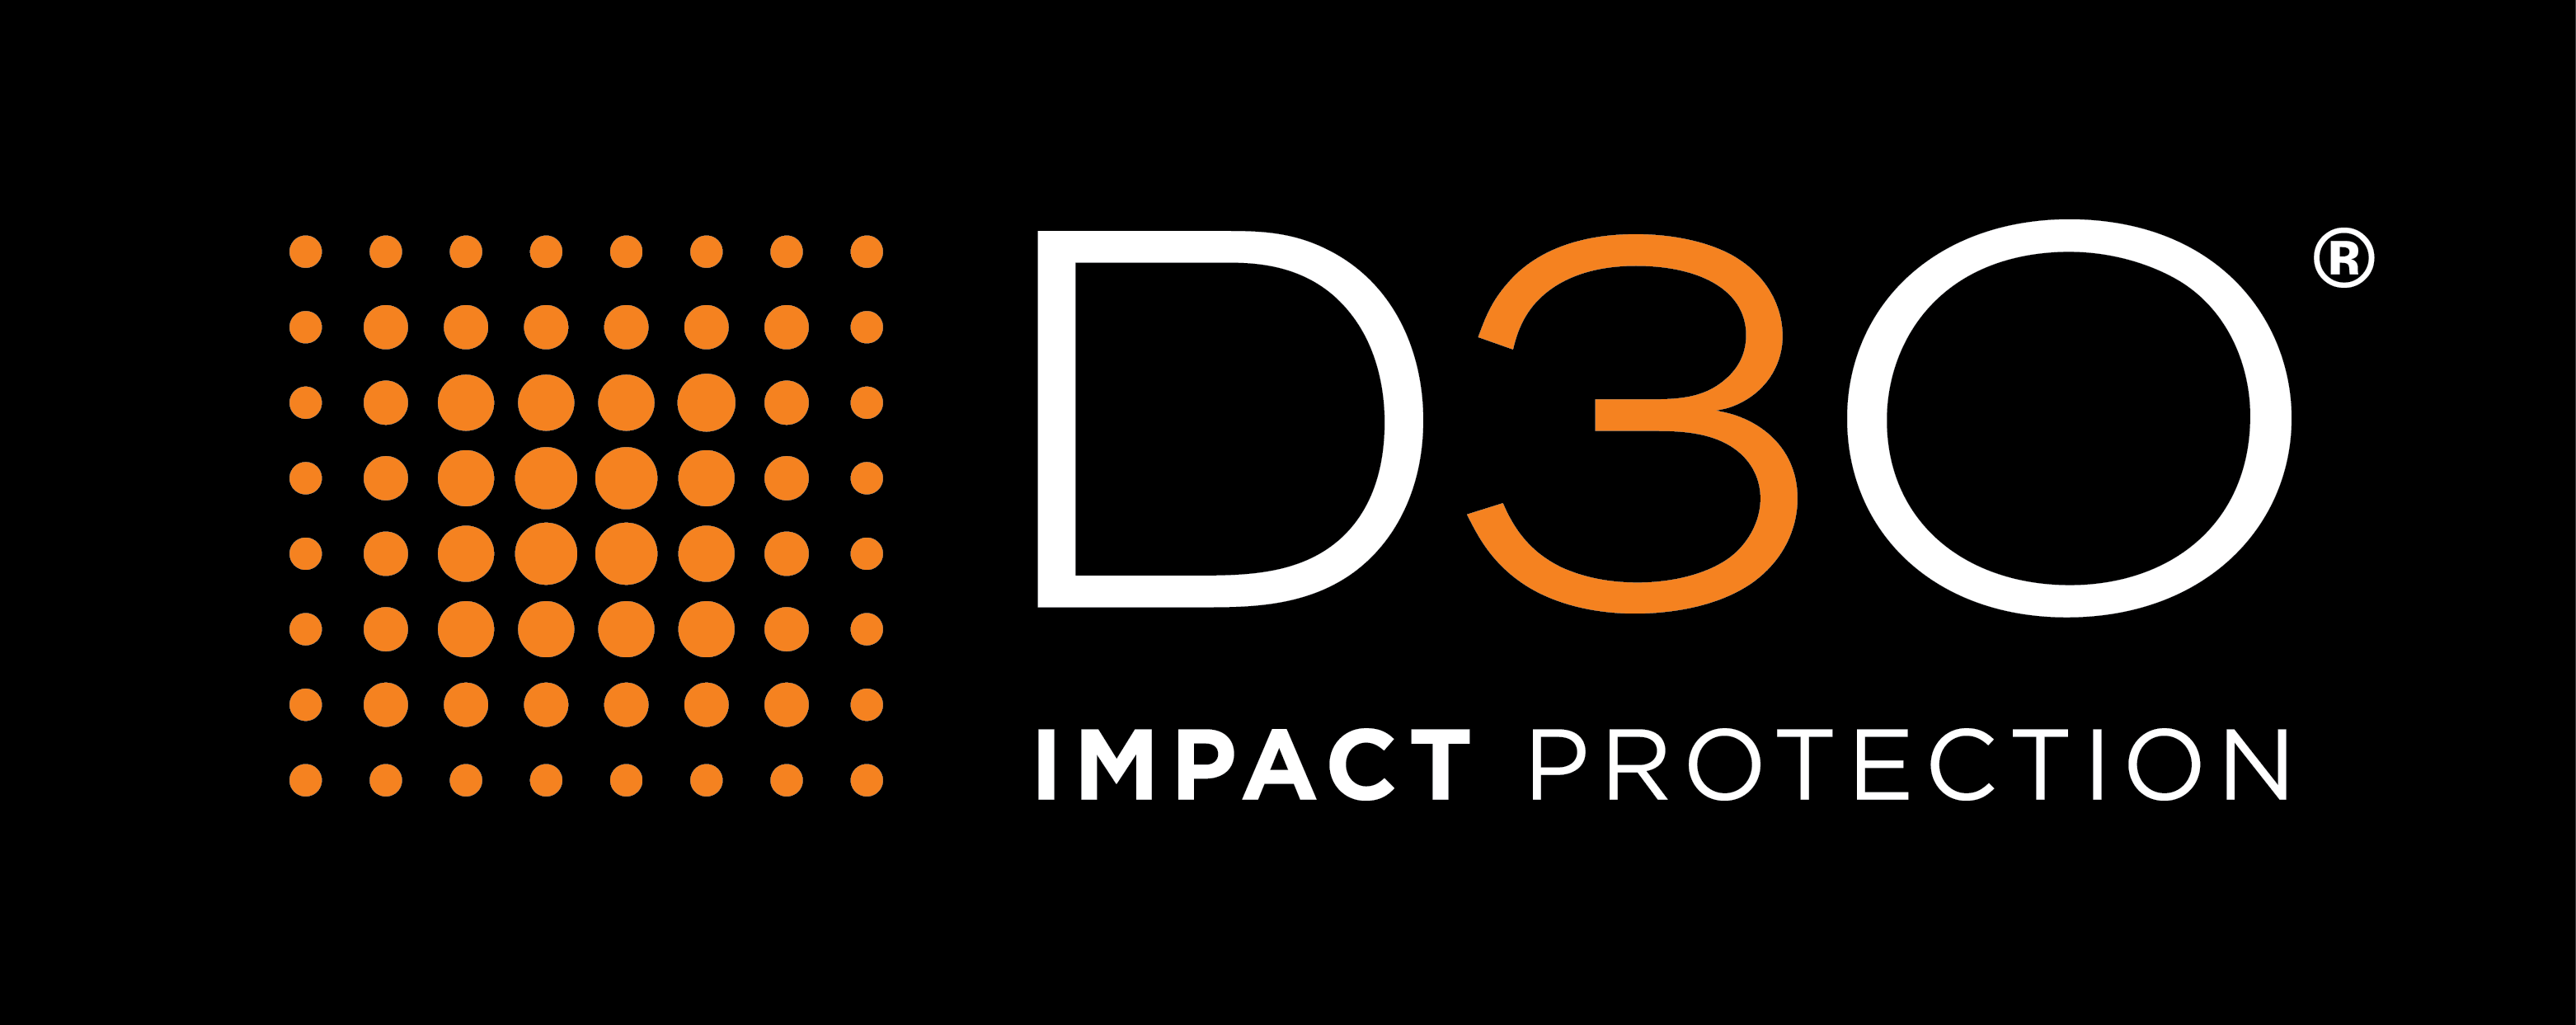 D30 impact protection